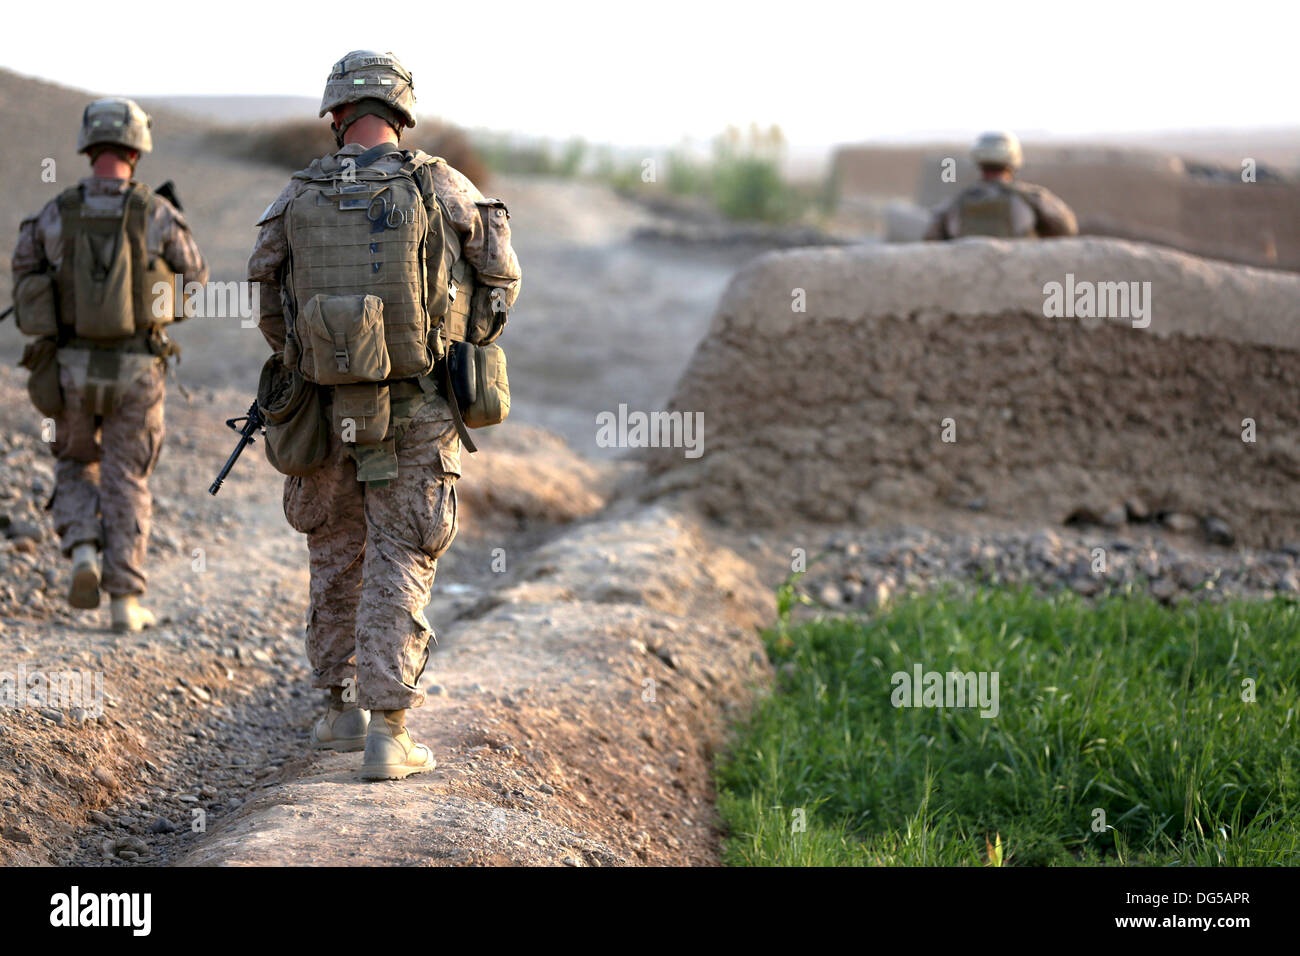 US Marines with Alpha company, 9th Marine Regiment during a foot patrol October 12, 2013 in Helmand province, Afghanistan. - Stock Image